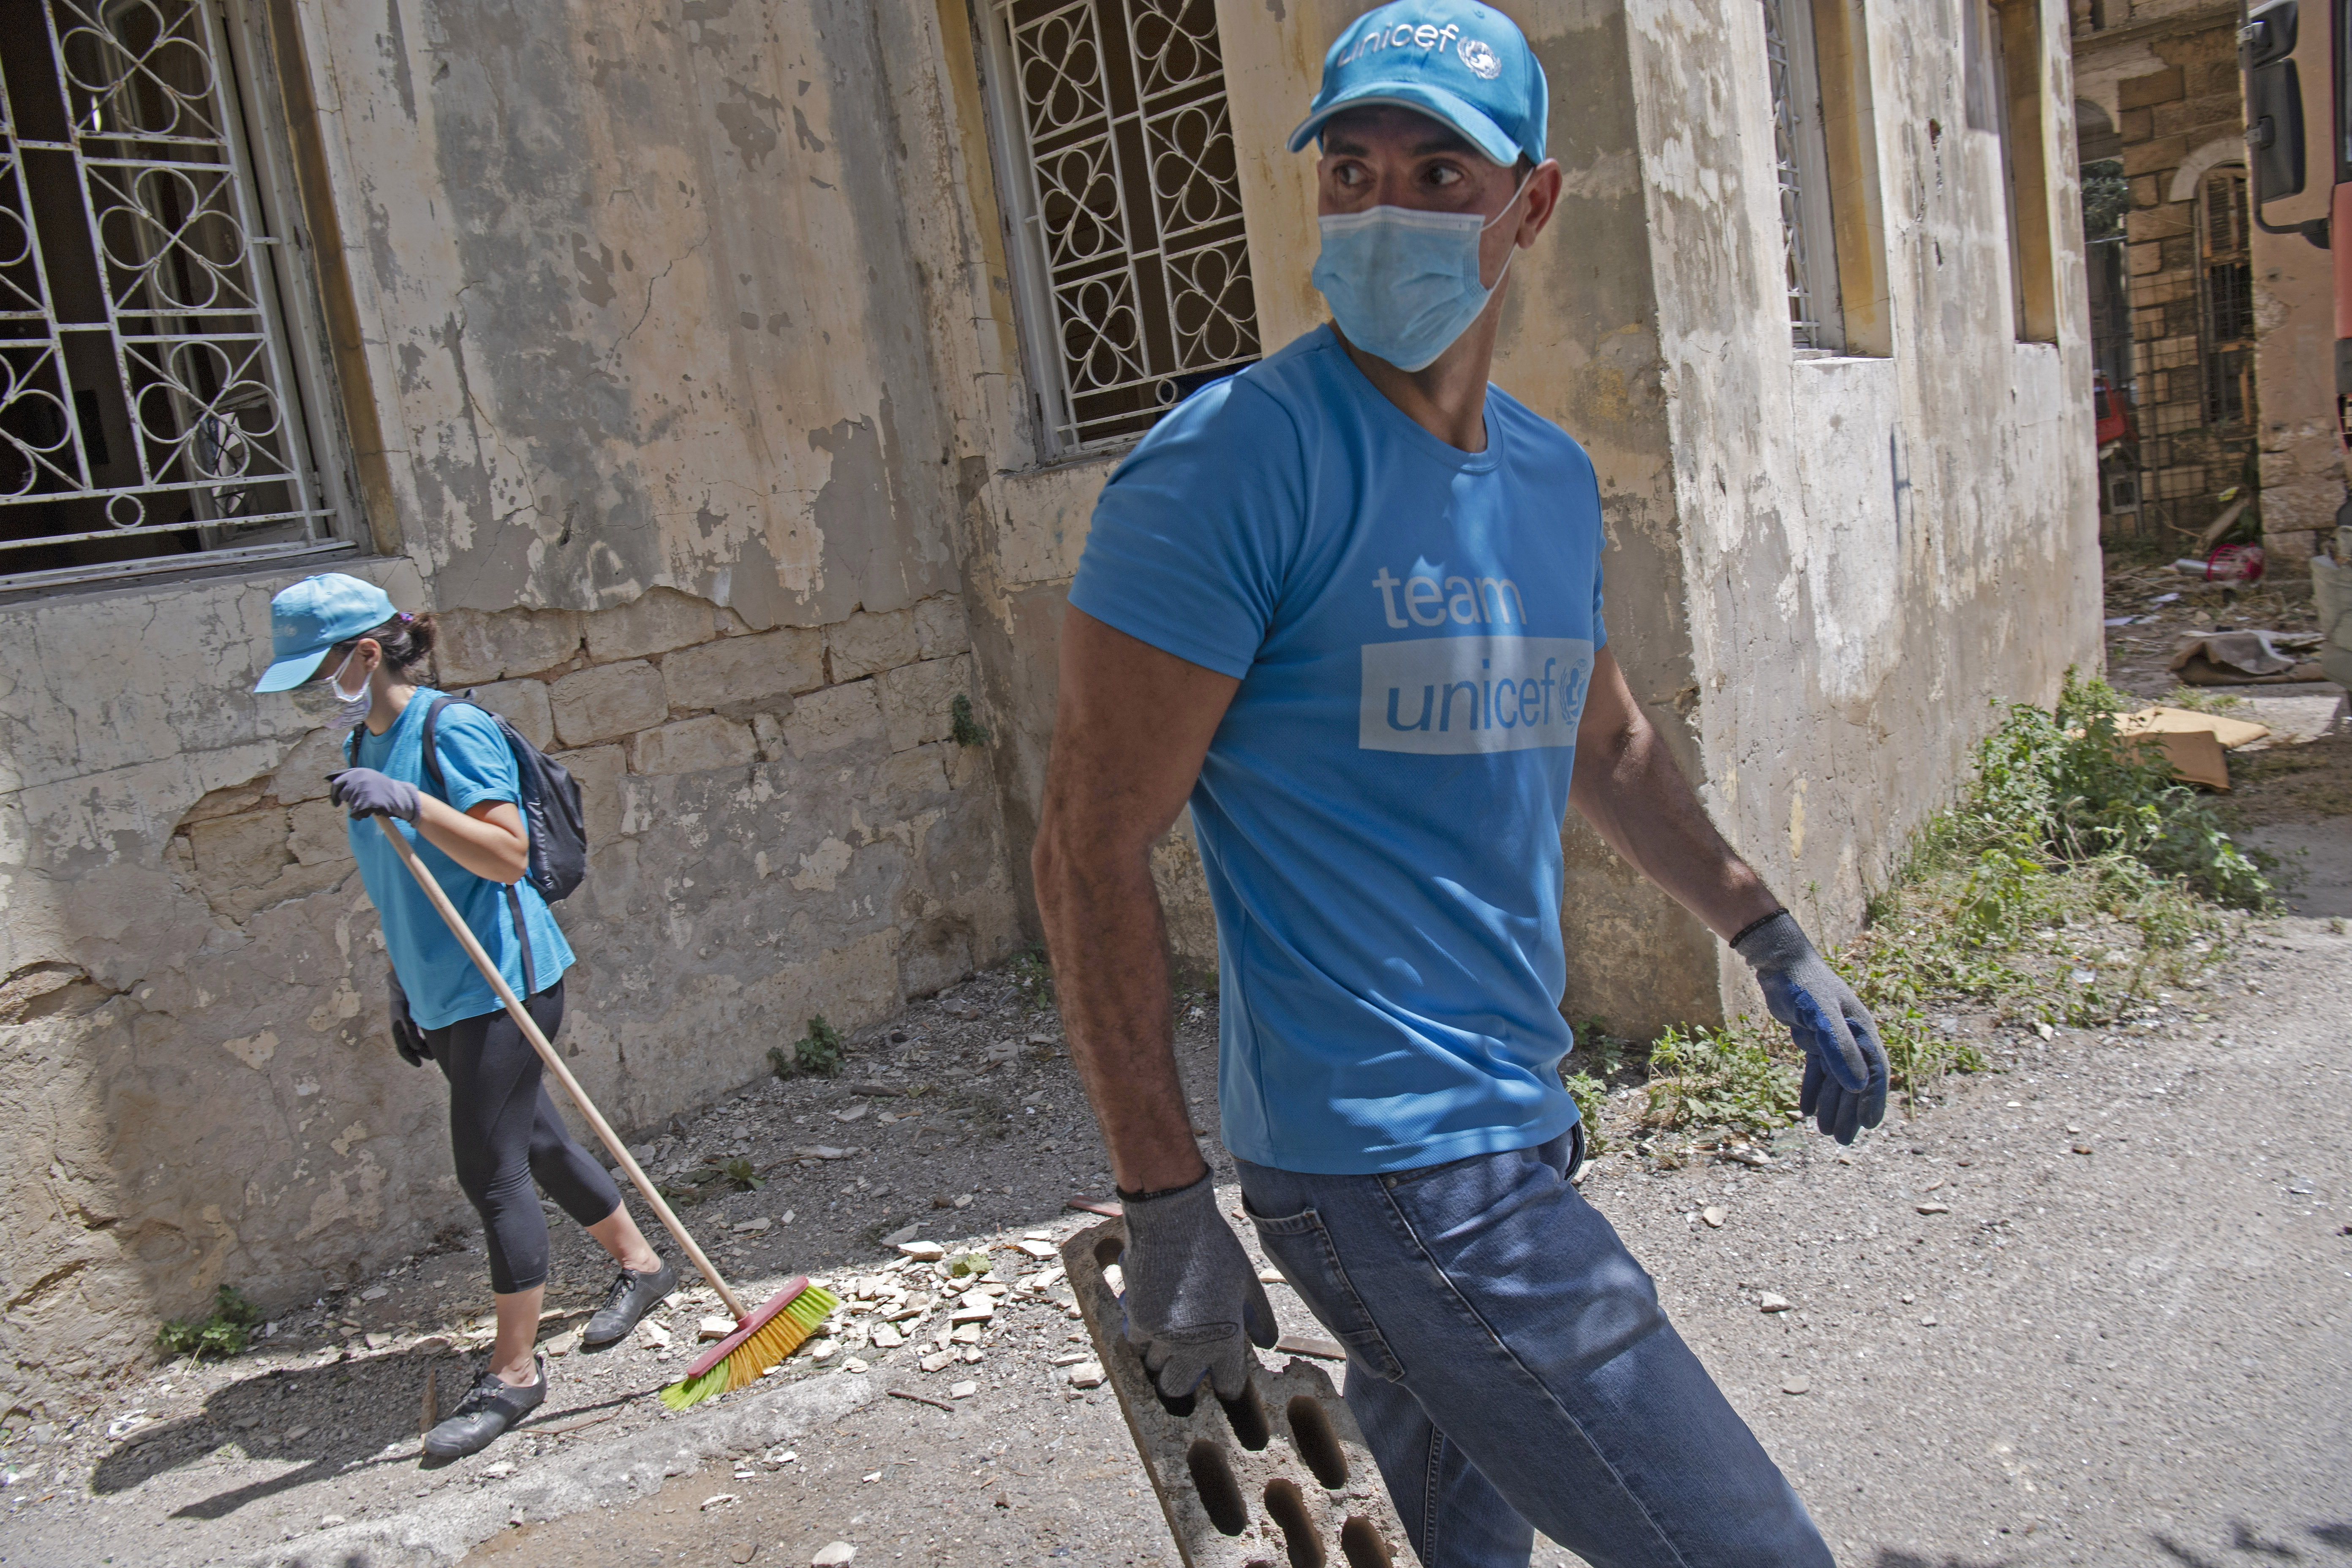 UNICEF workers – Beirut explosions